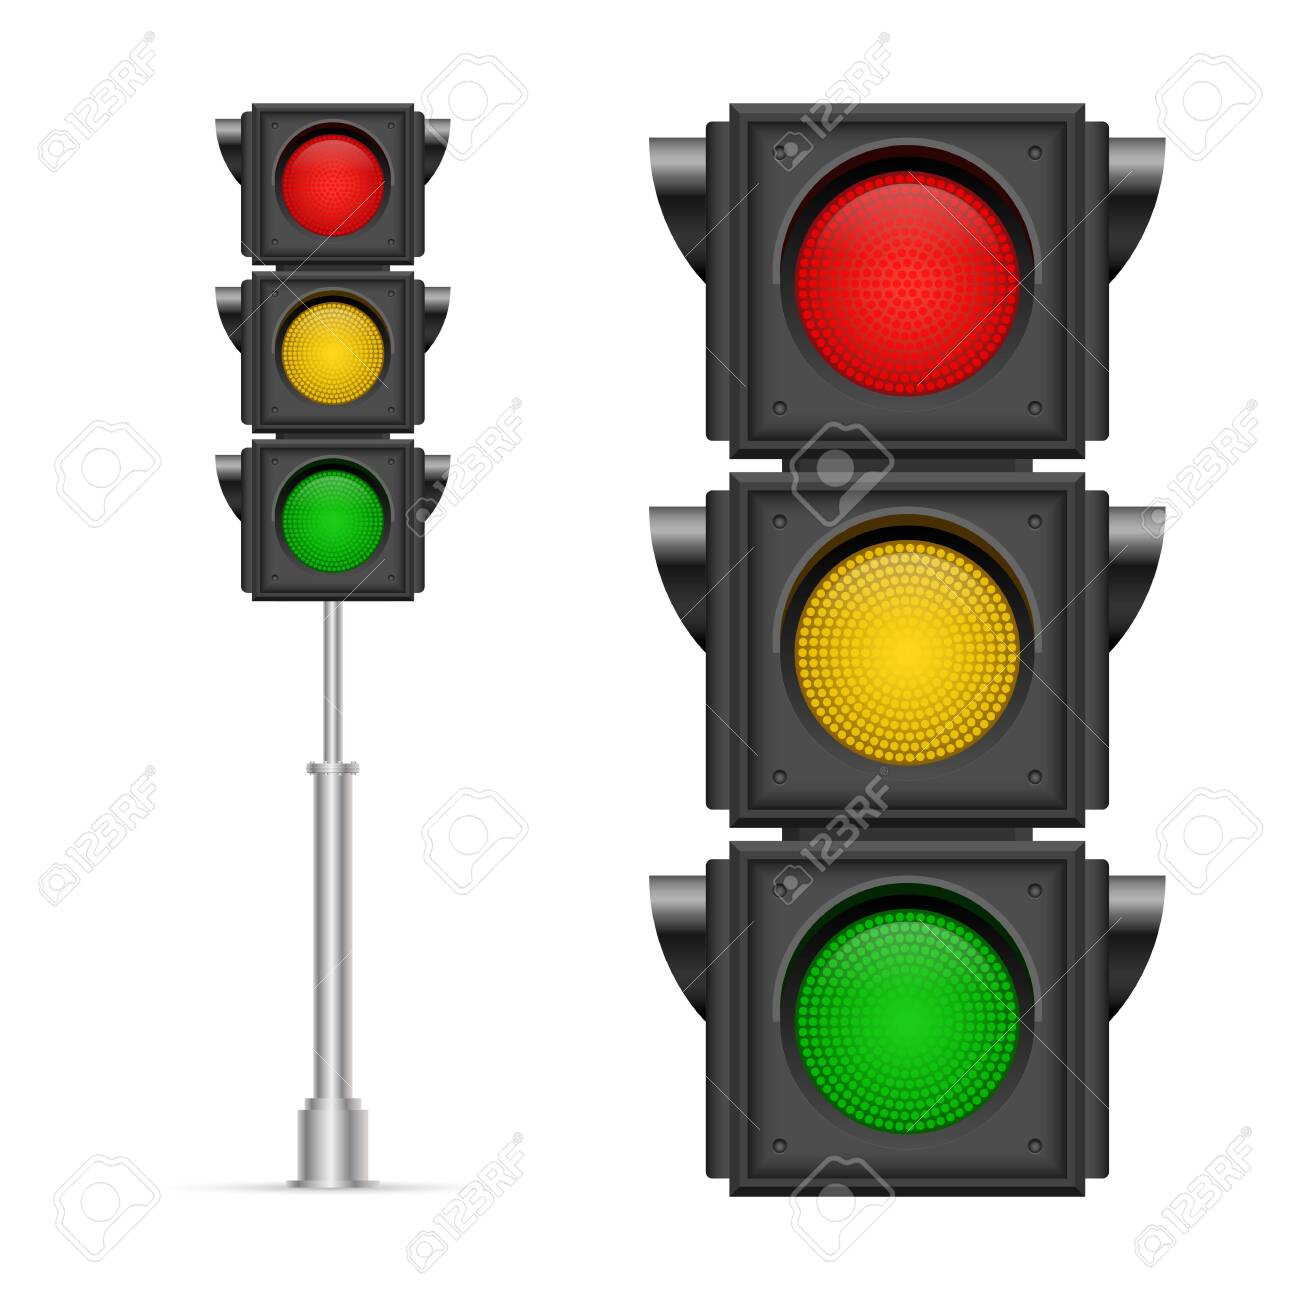 Traffic lights vector illustration isolated on white background - 143736363